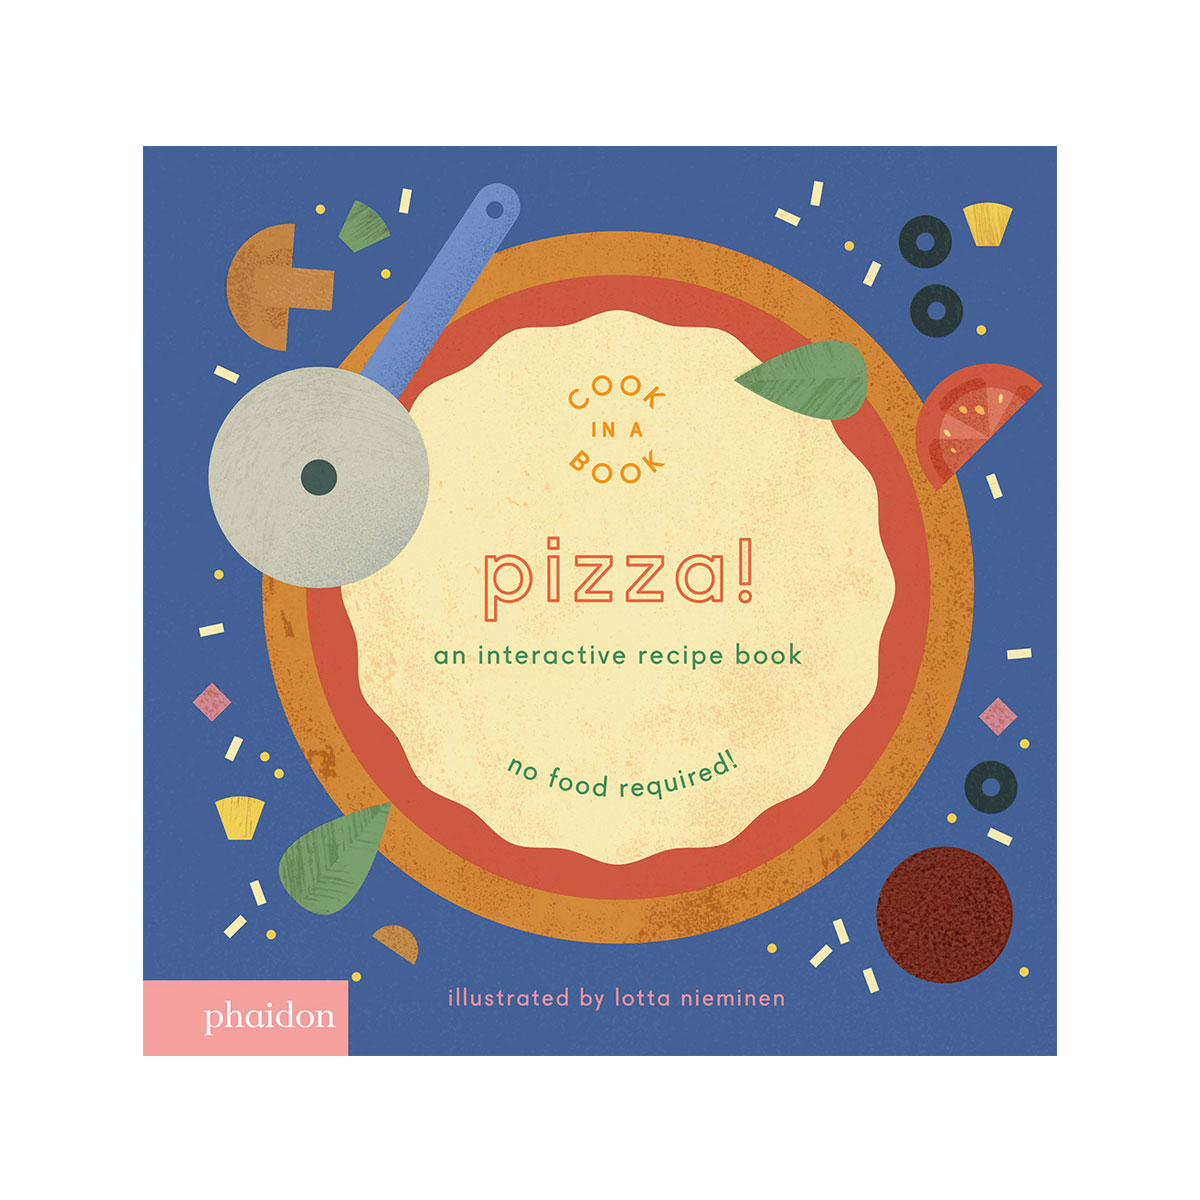 Phaidon Cook In A Book Book in Pizza